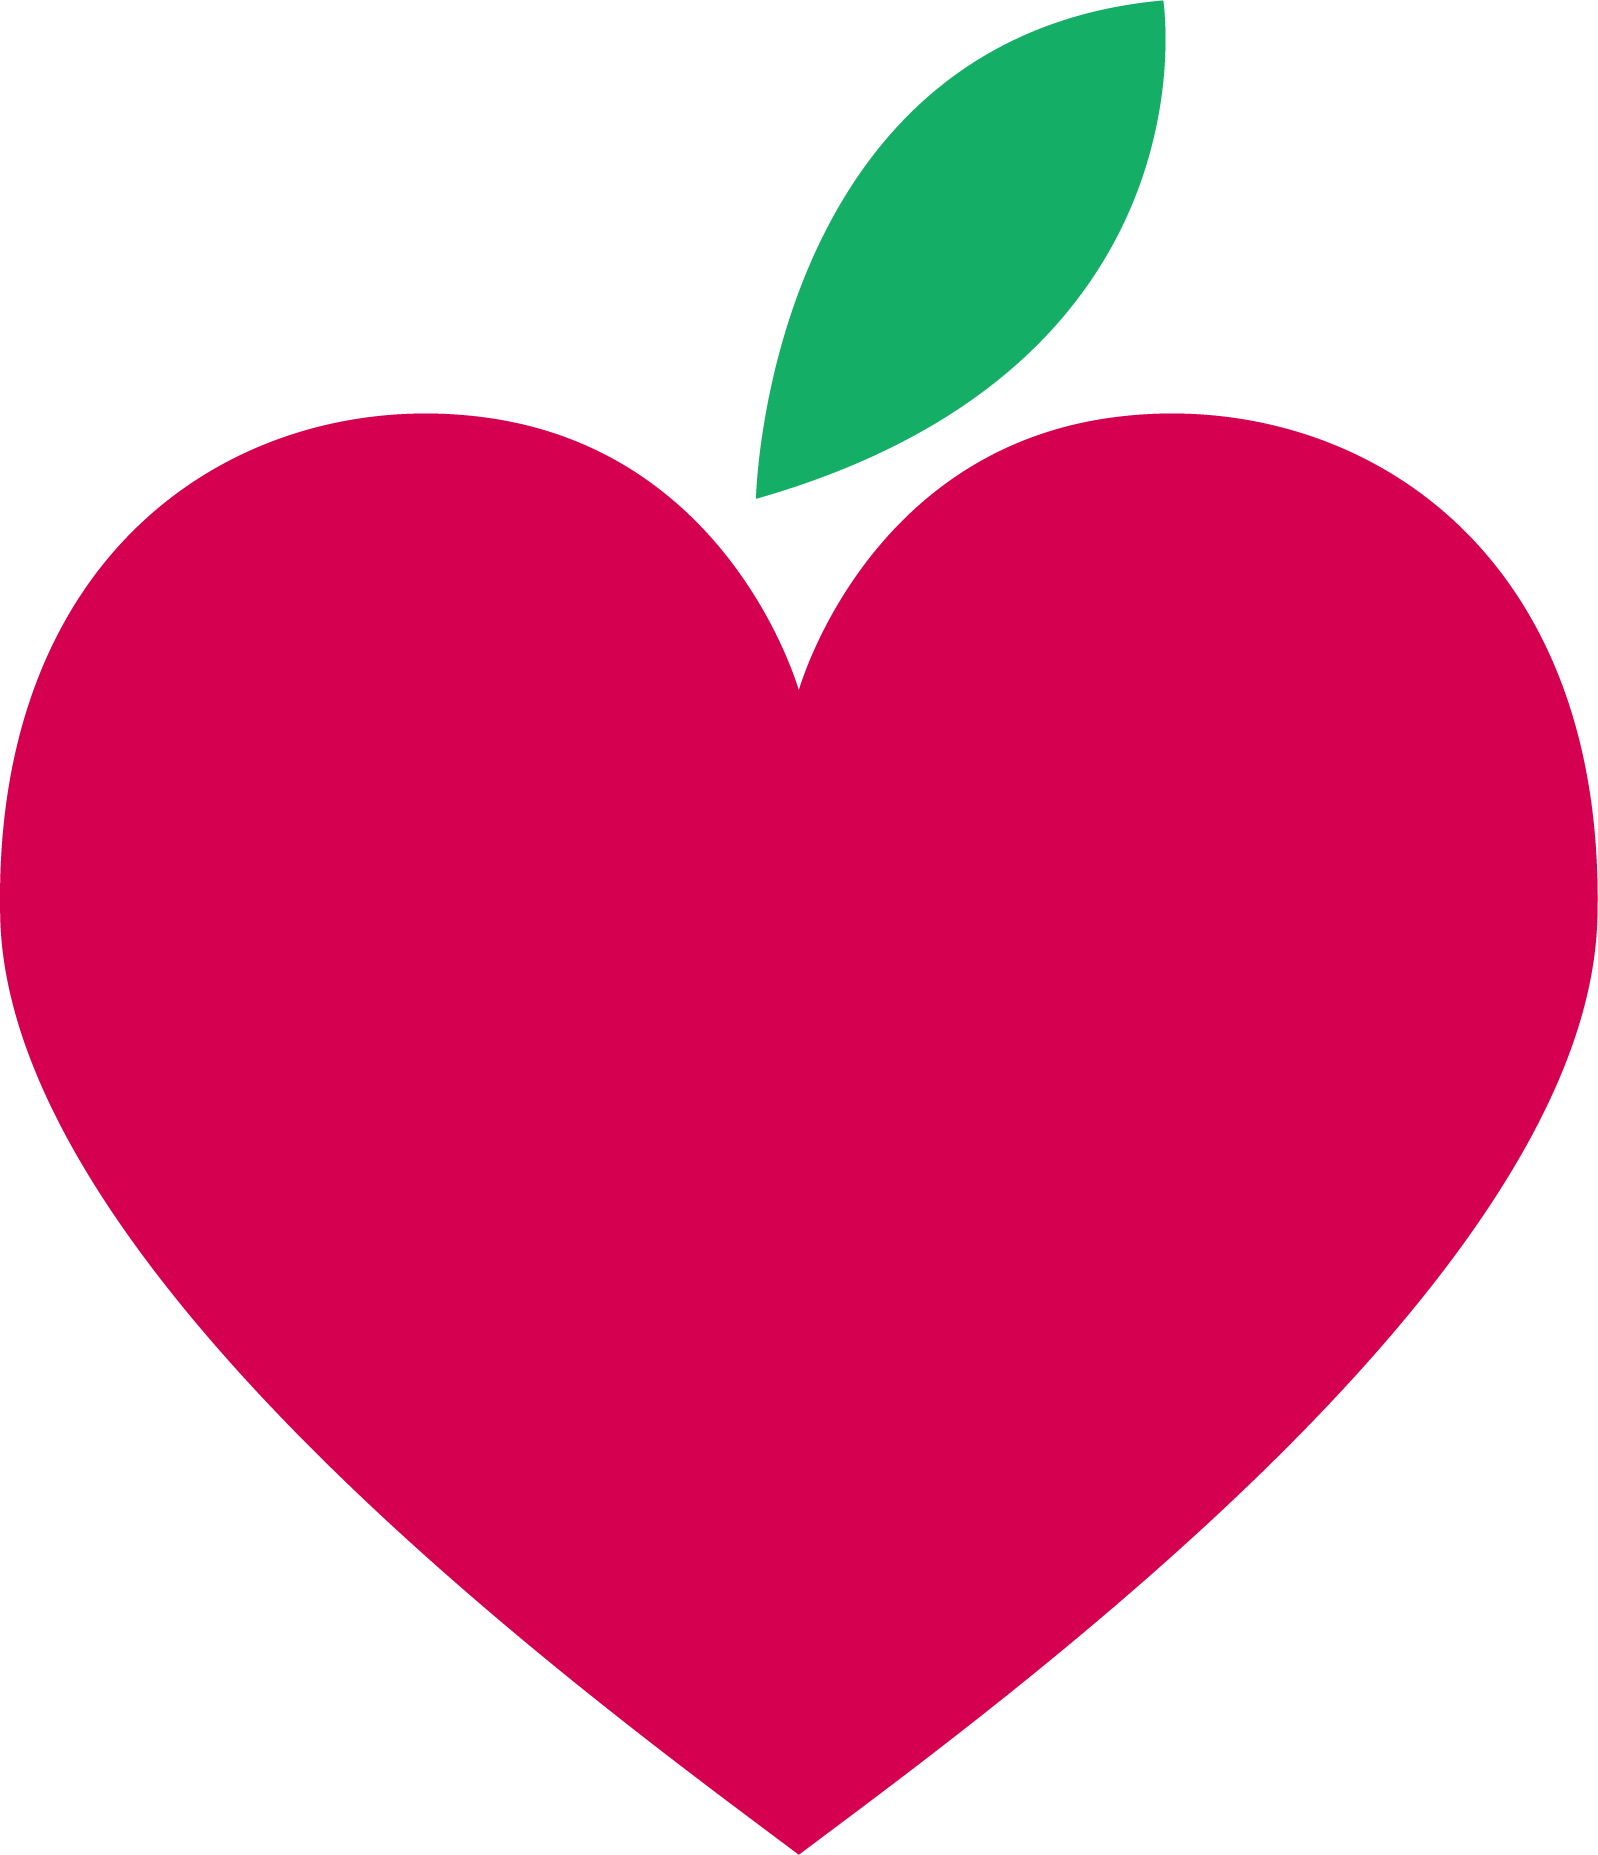 Heart shaped caramel apple clipart png svg black and white stock Icon - Apple hearts 1598*1855 transprent Png Free Download - Pink ... svg black and white stock